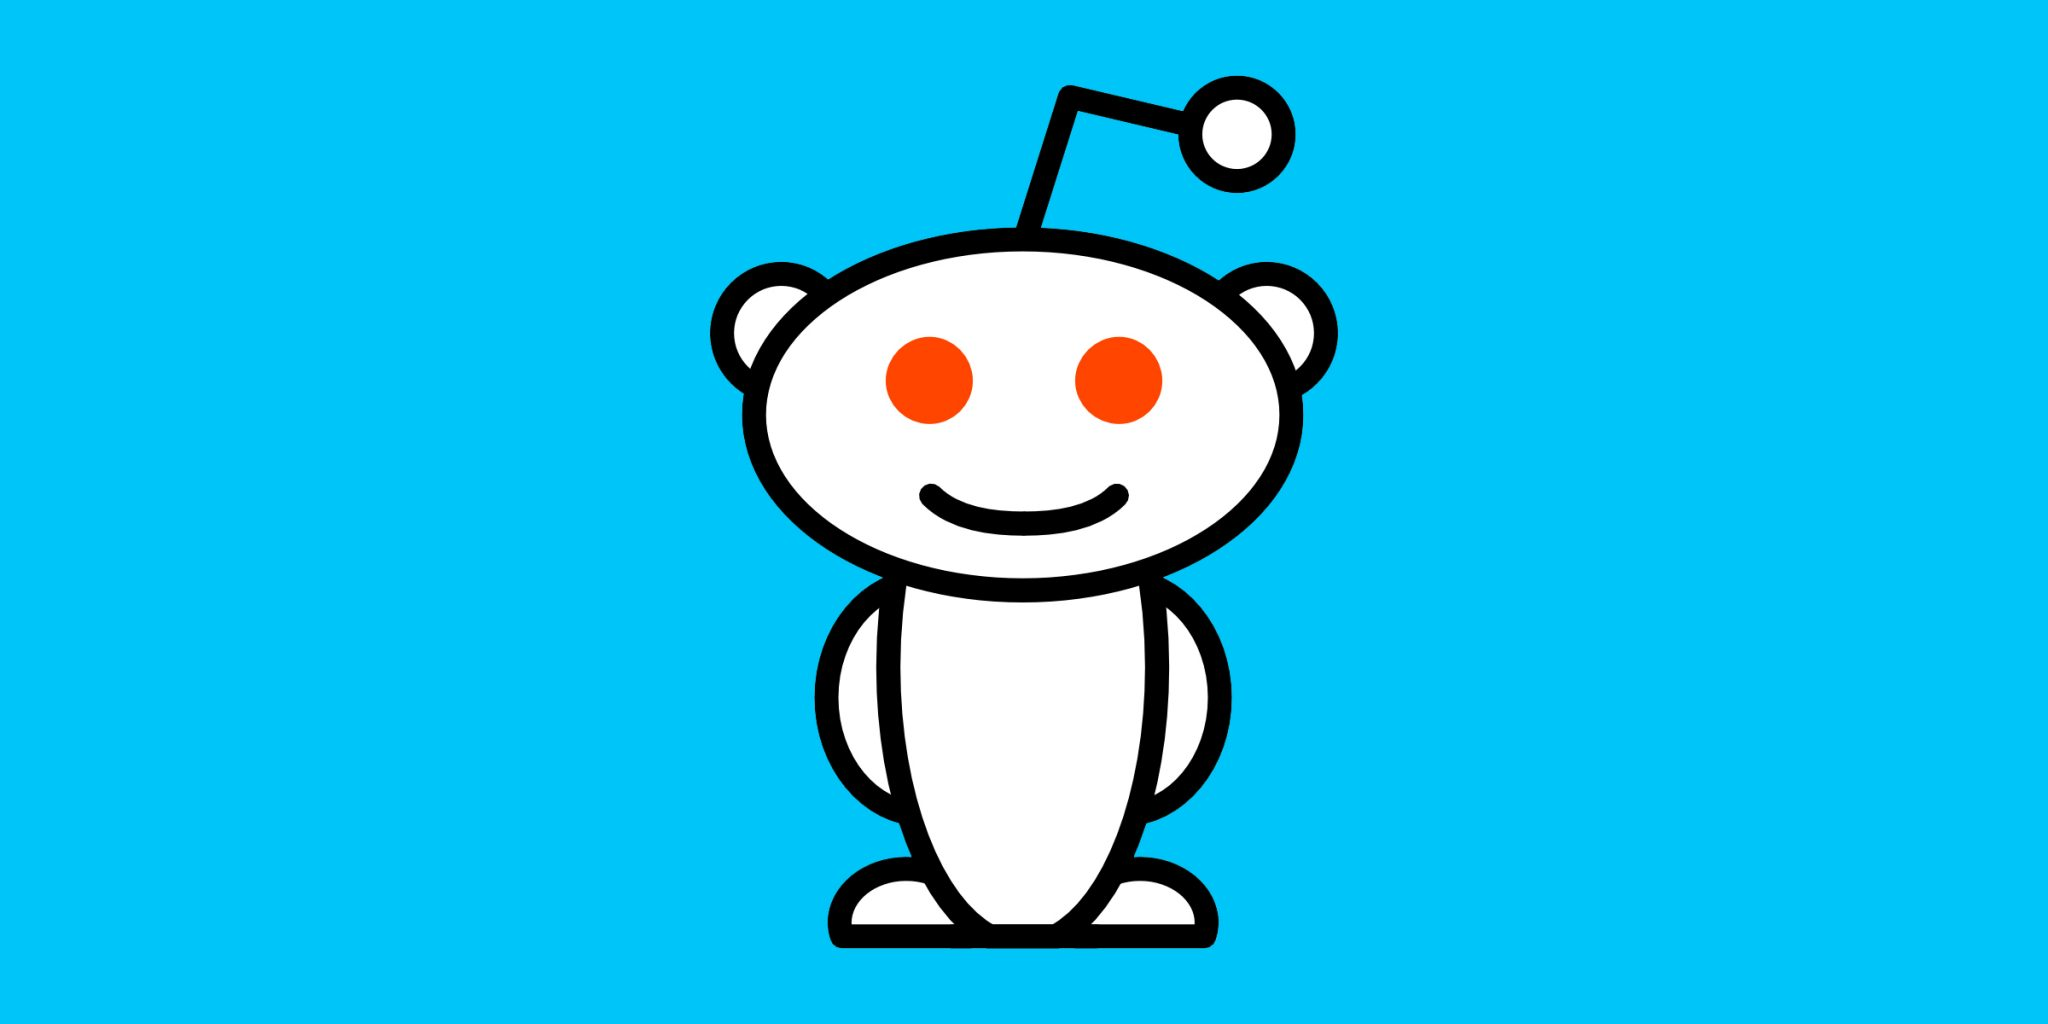 Reddit Is Reportedly Raising Funds, Valuing Startup at $1.7 Billion USD